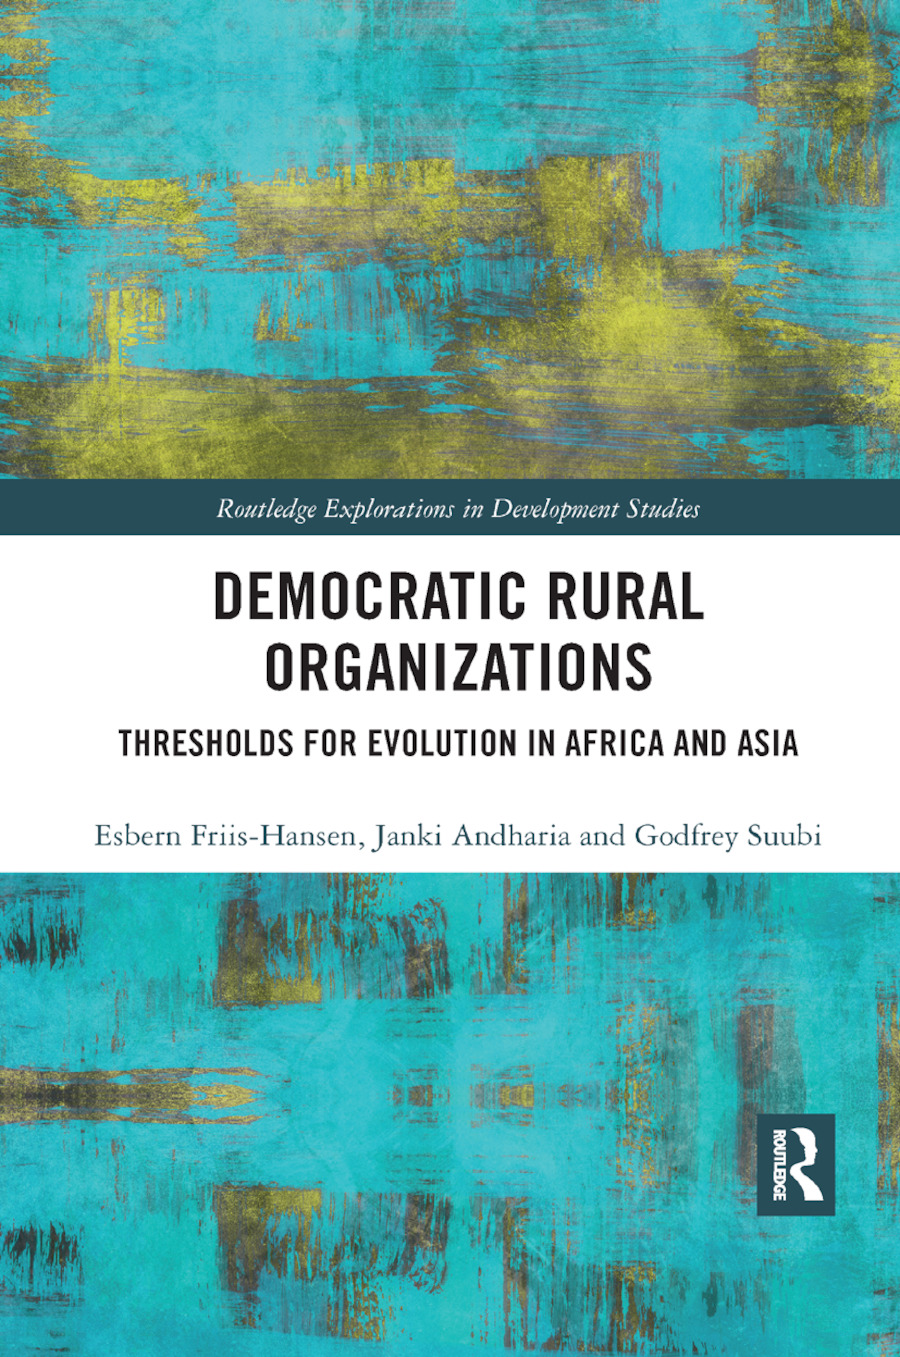 Democratic Rural Organizations: Thresholds for Evolution in Africa and Asia, 1st Edition (Paperback) book cover